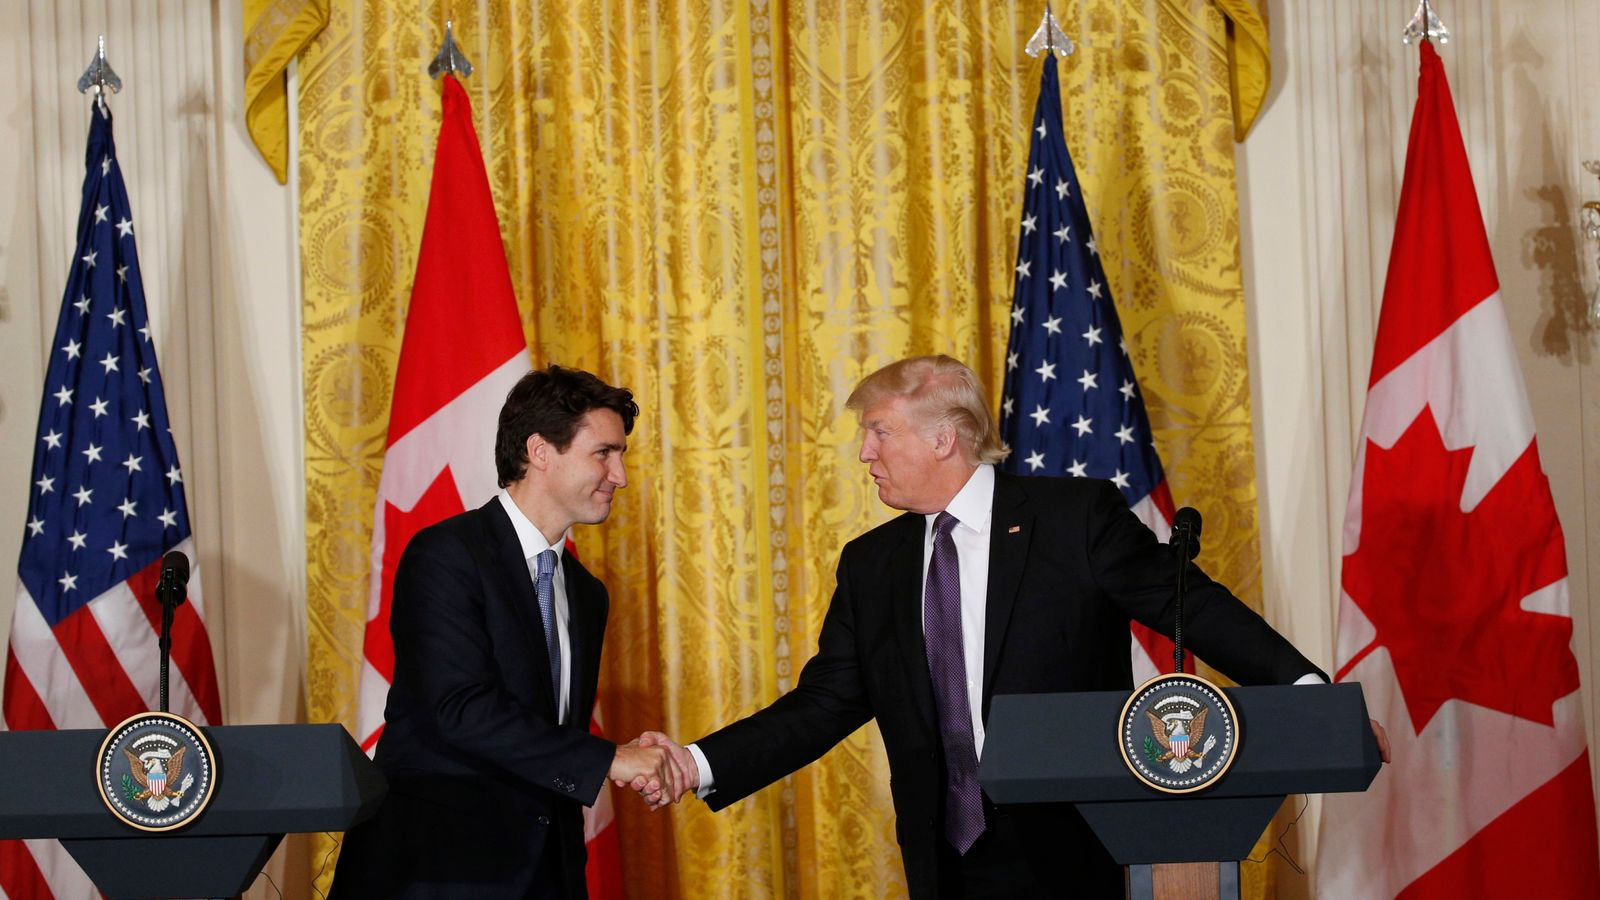 canadian dating app trump The guardian app video donald trump bragged that he made up facts in a meeting with the canadian prime trump made 2,140 false or misleading.